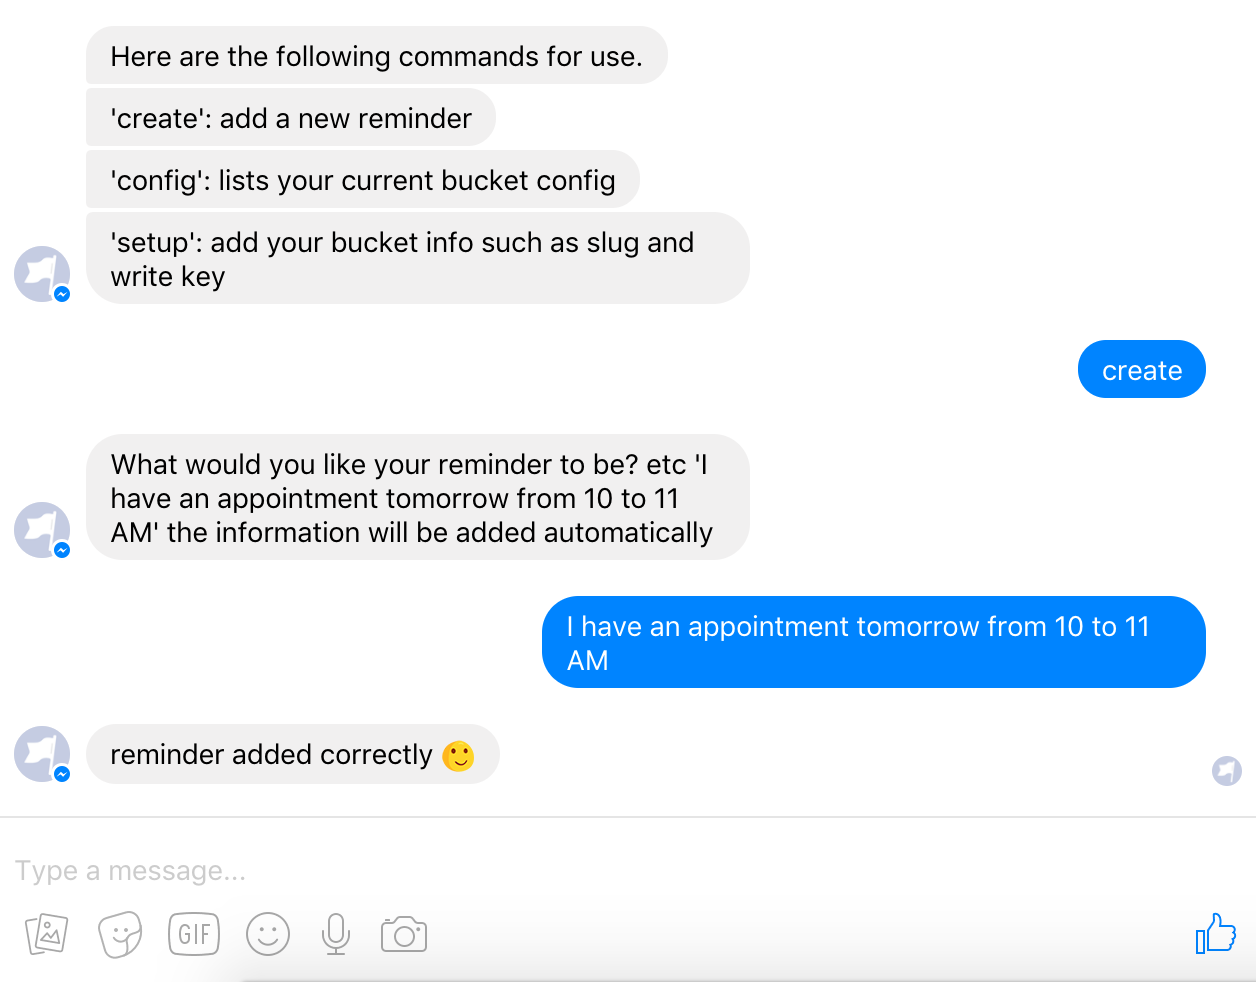 How to Build a Facebook Bot App Using Node js - By